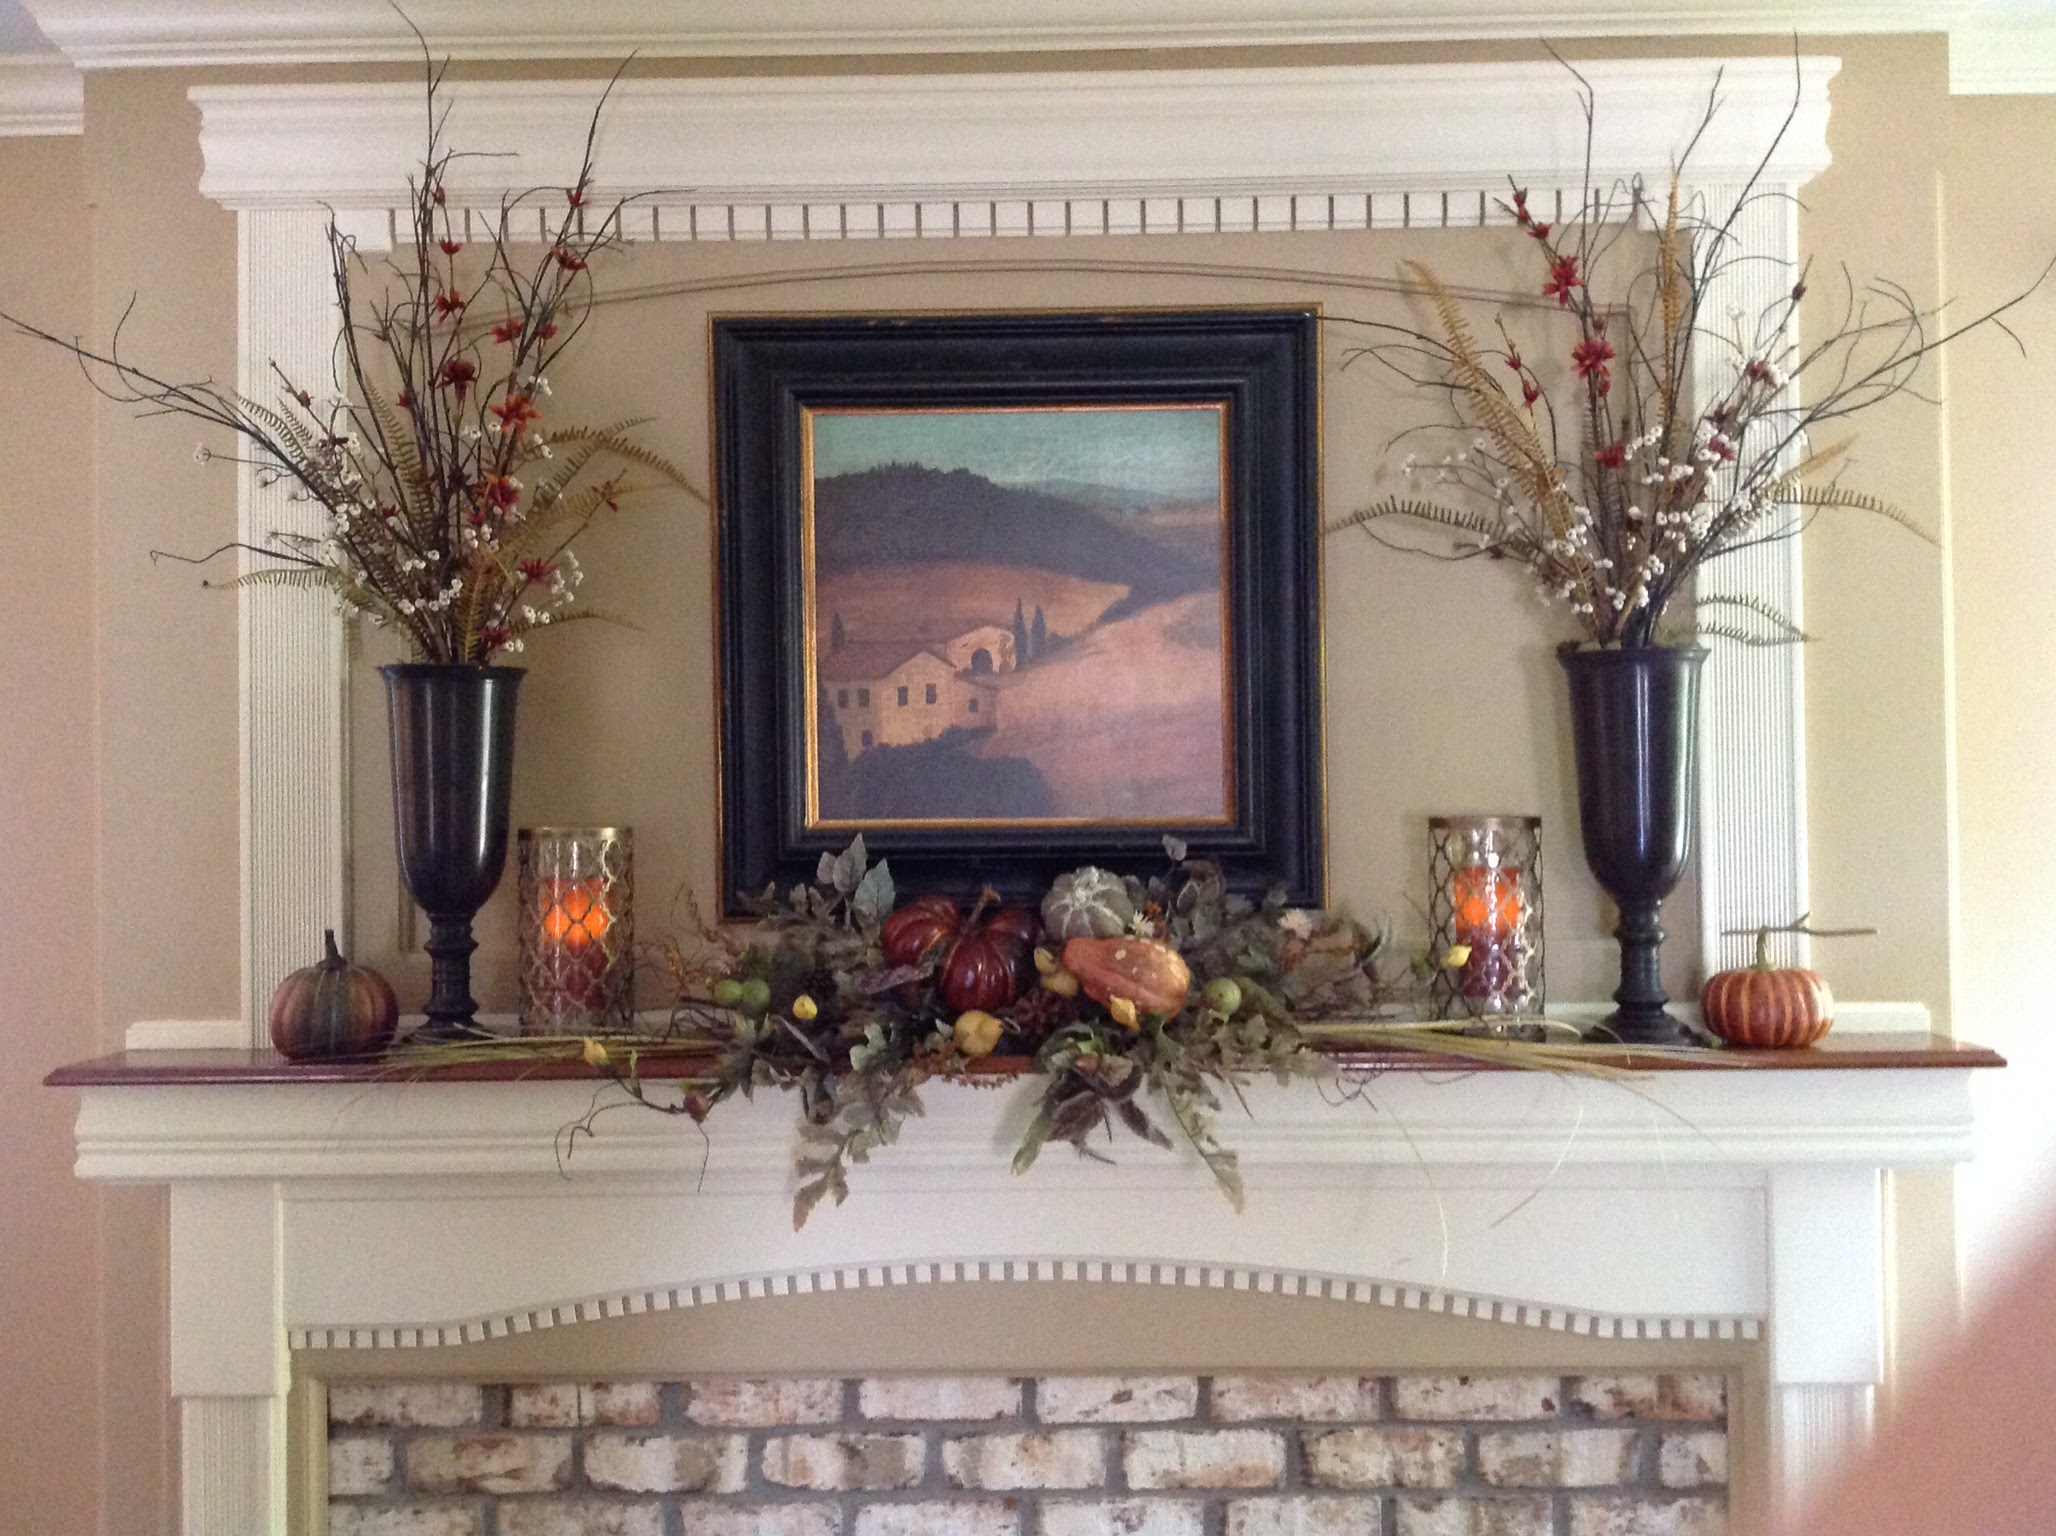 Living Room Decorating Like Pottery Barn decorating for fall in urbandale ive had the tall urns from pottery barn years and have invested both a springsummer fallwinter arrangement plus christmas one that i trade